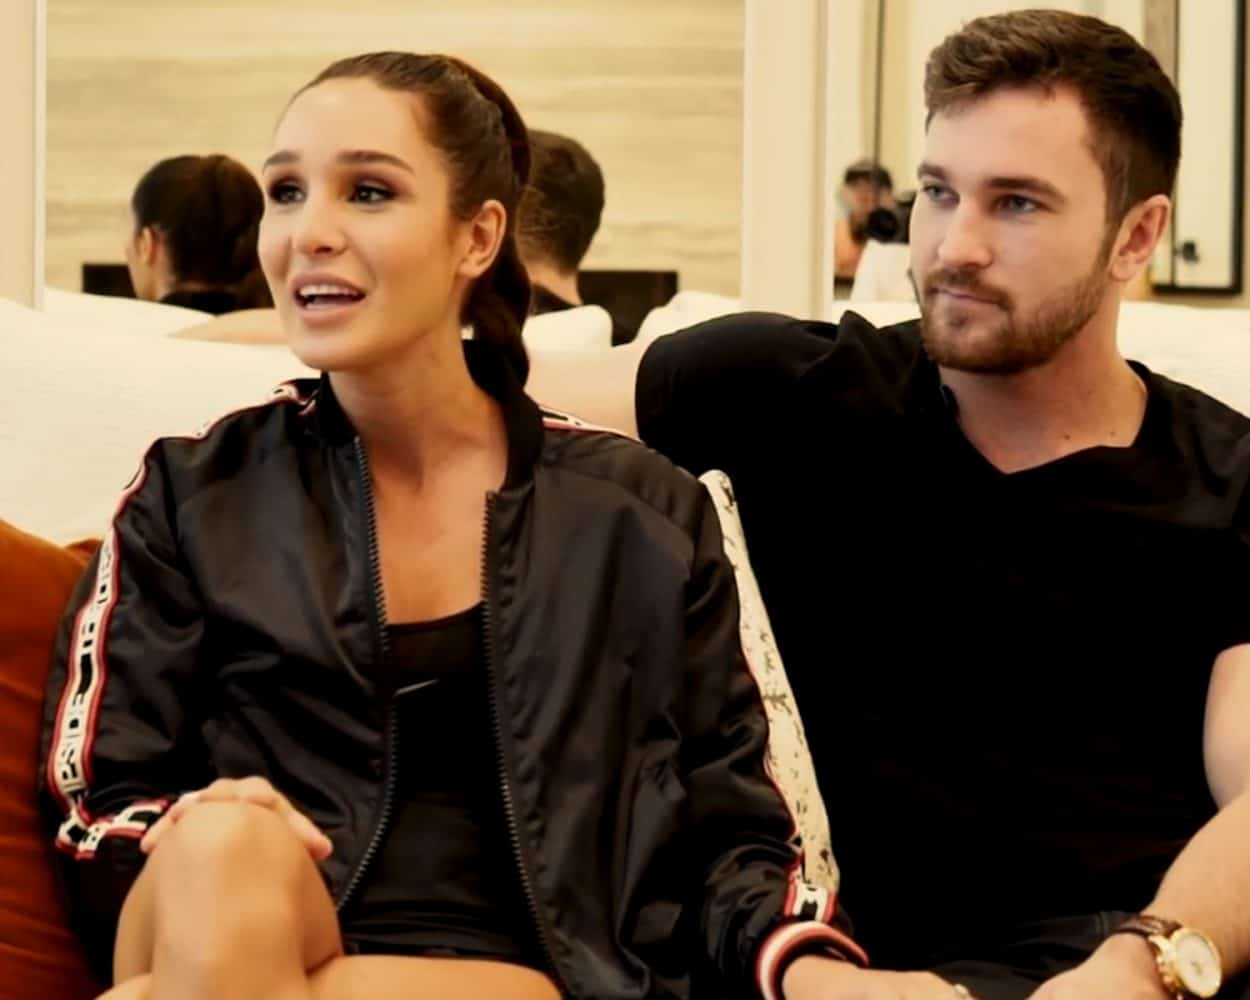 Sweating It Out: How Kayla Itsines and Tobi Pearce Became Australia's Wealthiest Self-Made Couple under 30